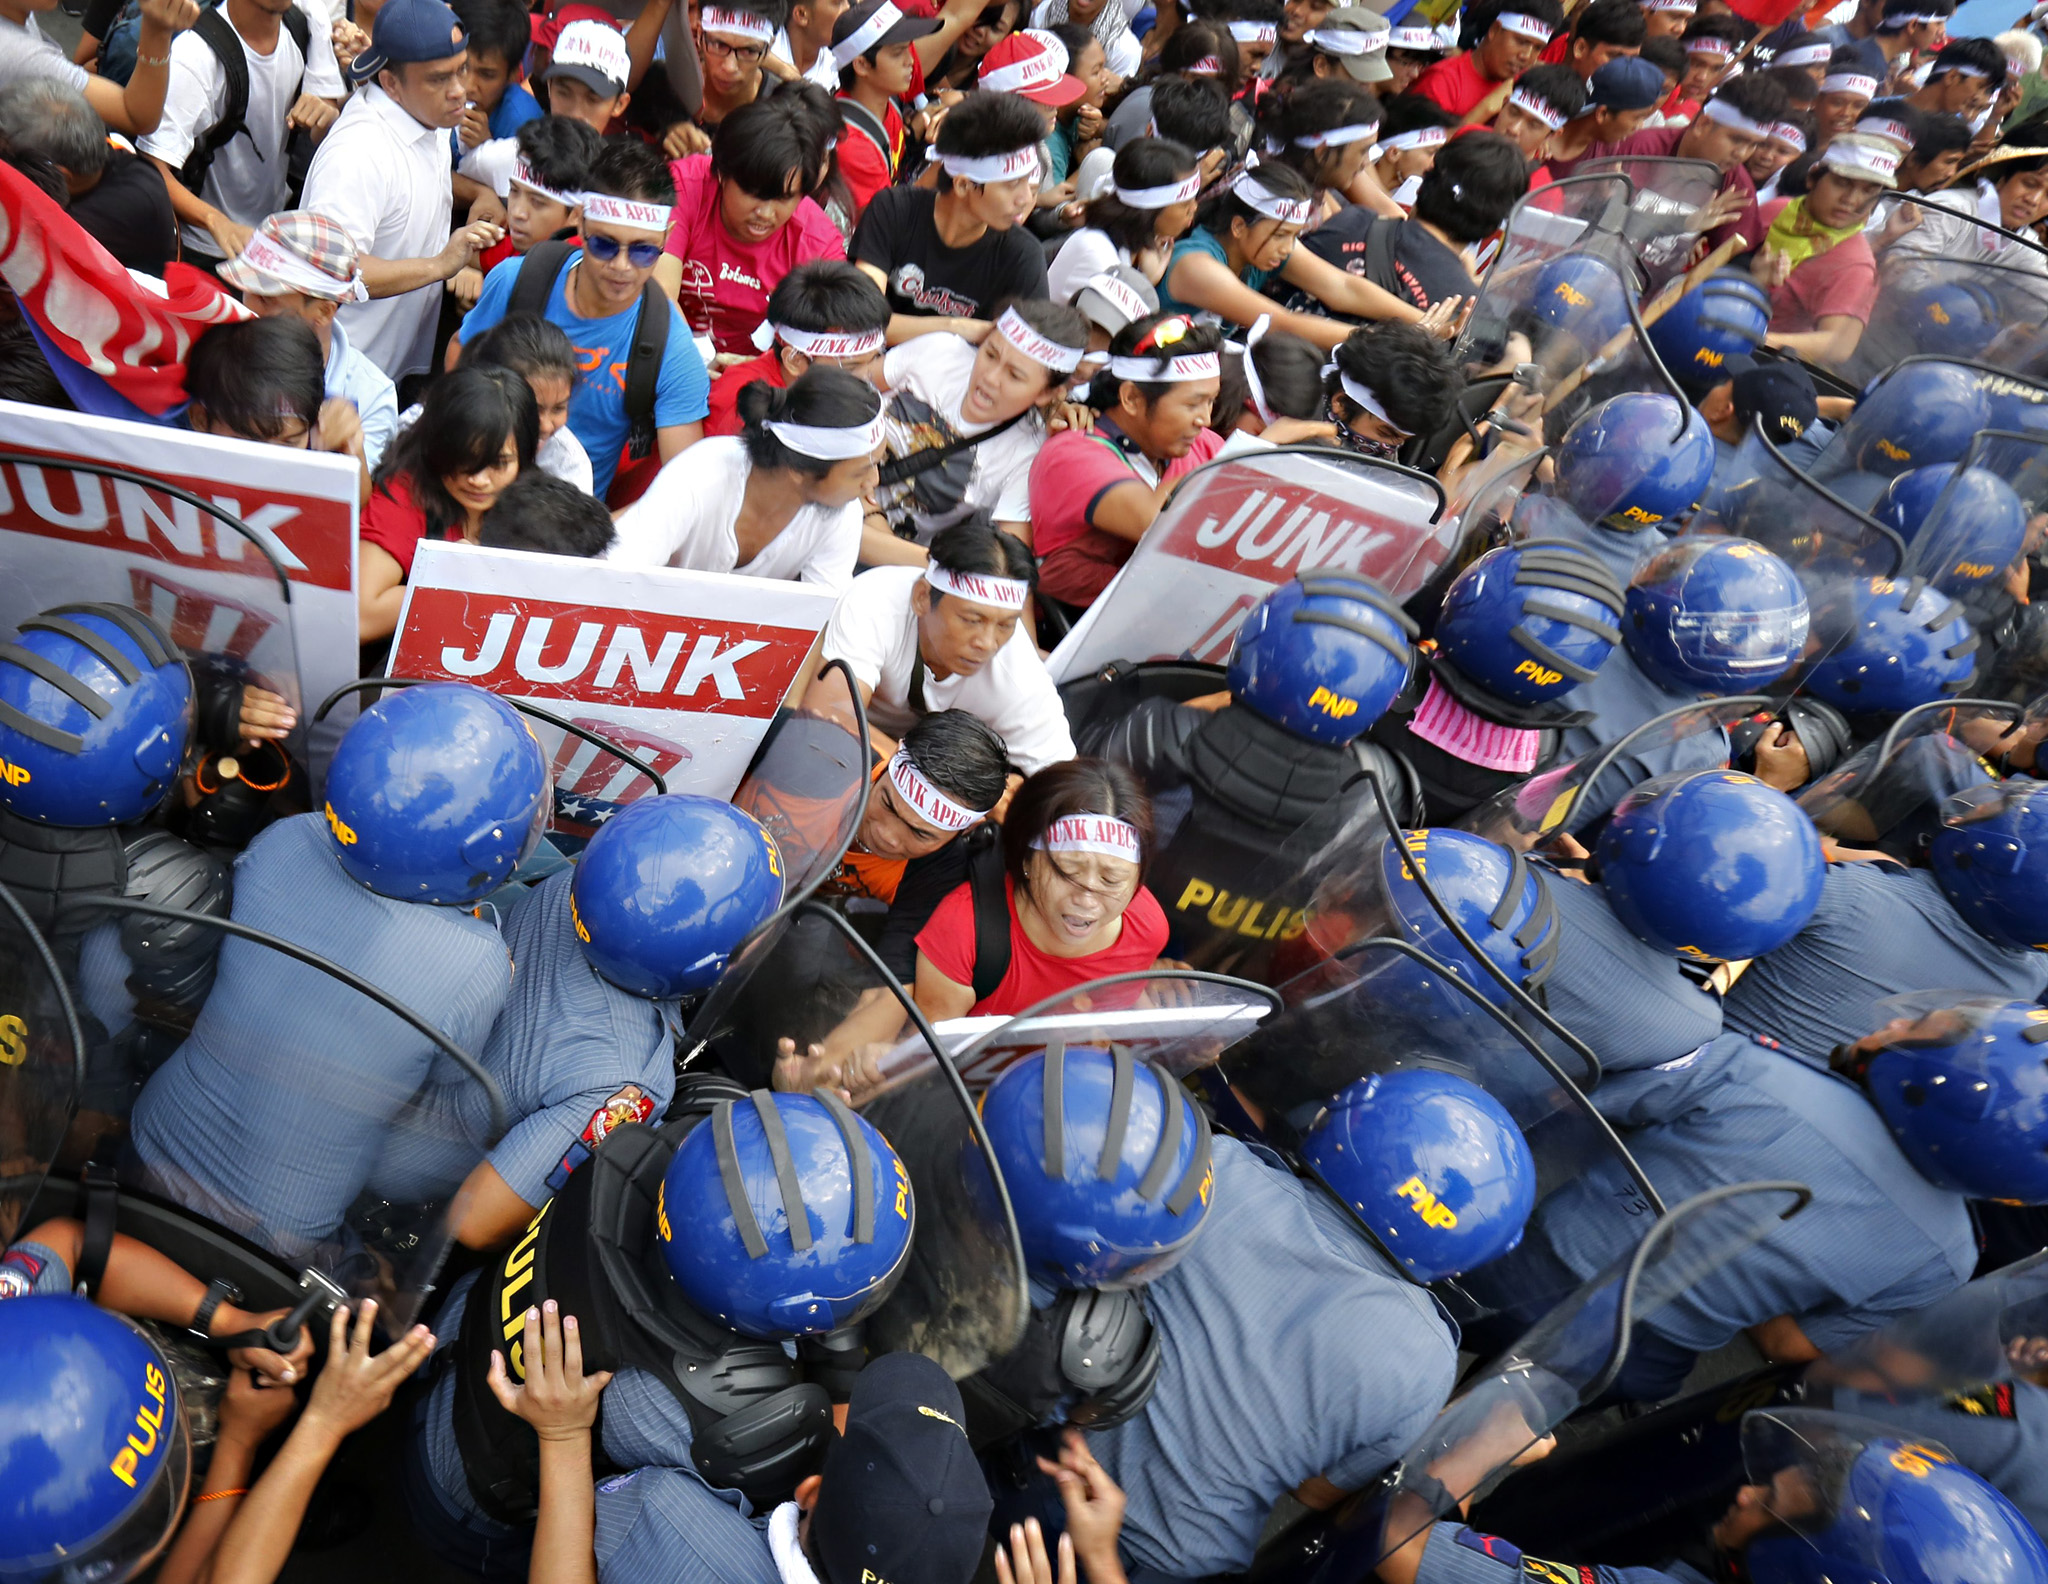 Filipino activists clash with riot police officers during a protest rally near the venue of the on-going Asia-Pacific Economic Cooperation (APEC) summit in Manila